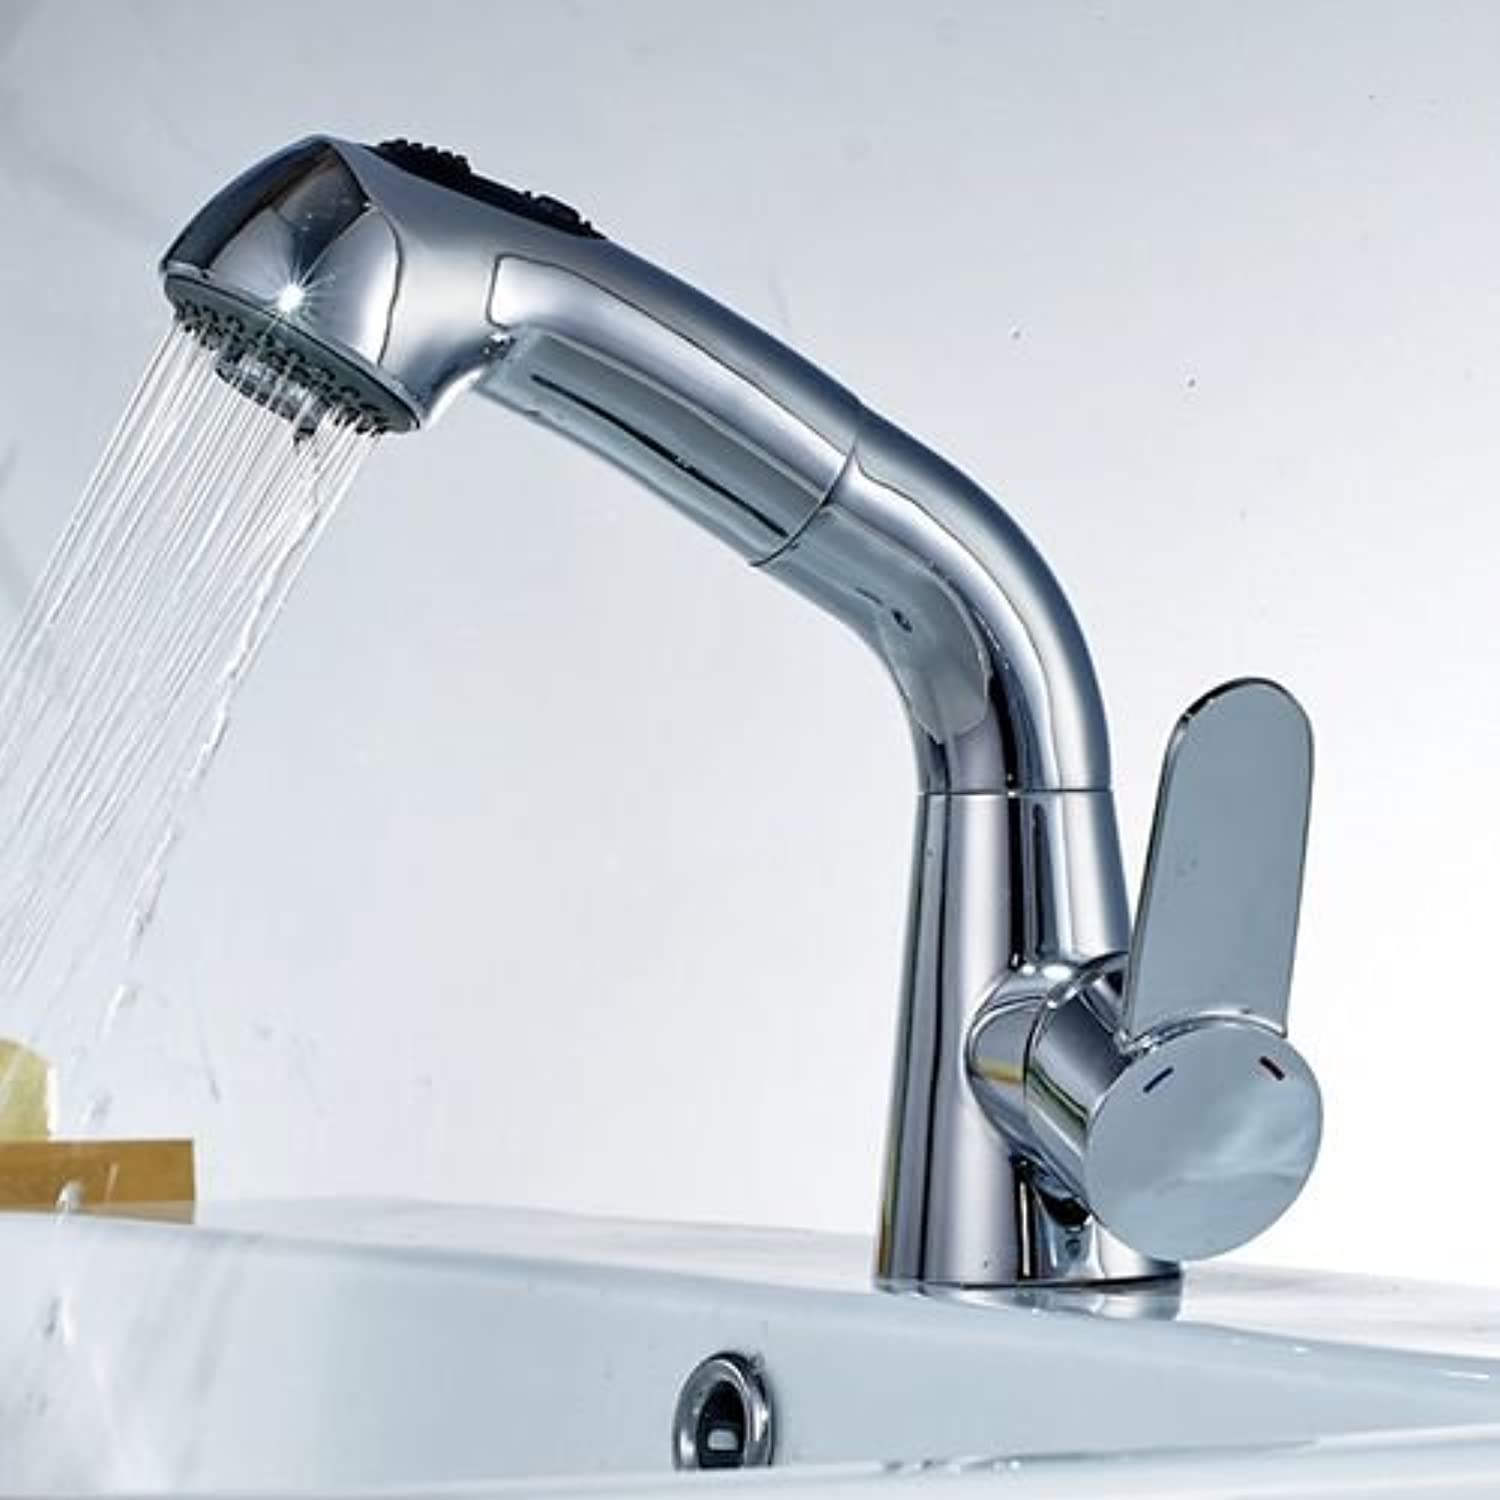 Makej Copper Pull Out Bathroom Sink Faucet Hot and Cold Water Mixer Crane Square Basin Sink Tap Chrome Finished,Roll B